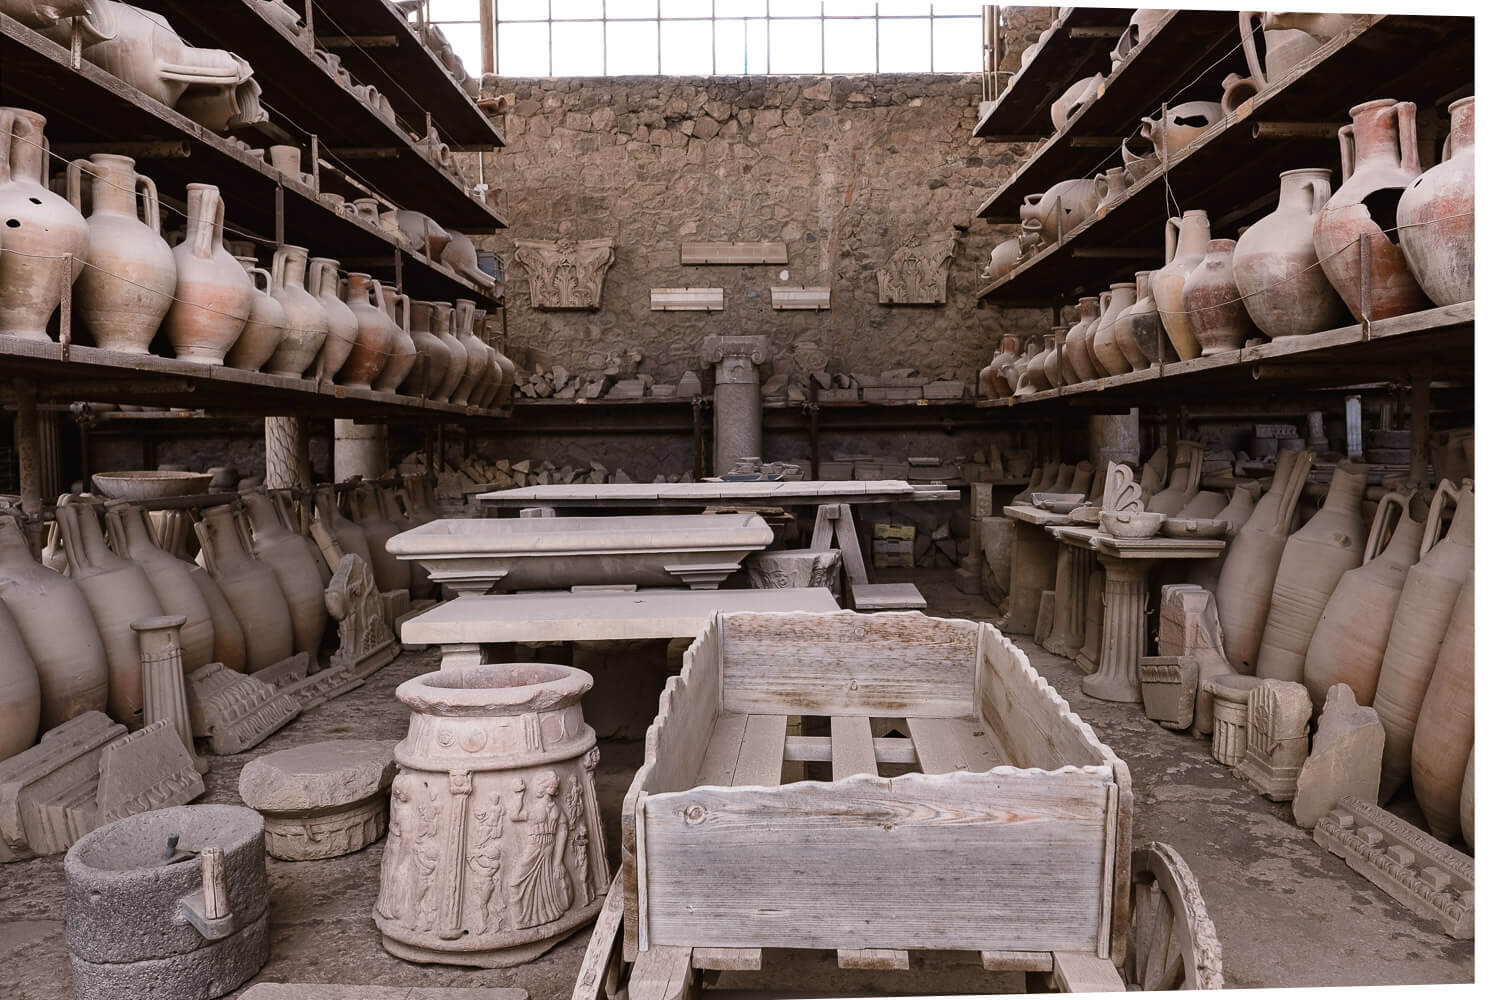 """Artifacts of Pompeii. Travel photography and guide by © Natasha Lequepeys for """"And Then I Met Yoko"""". #pompeii #italy #fujifilm #travelphotography"""